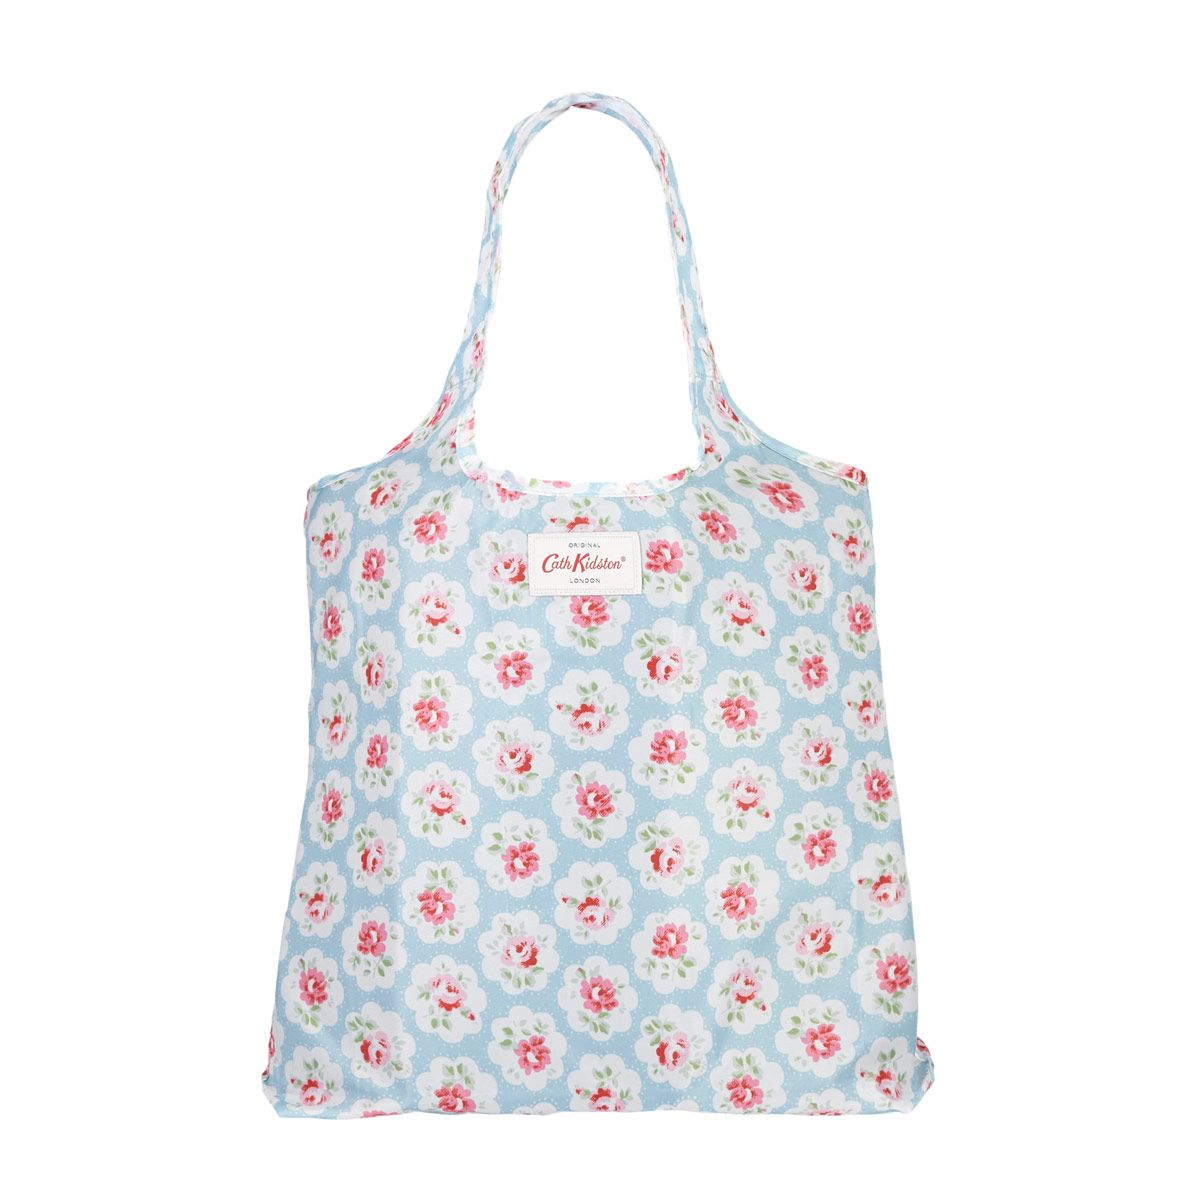 Image result for Cath kidston shopping bag